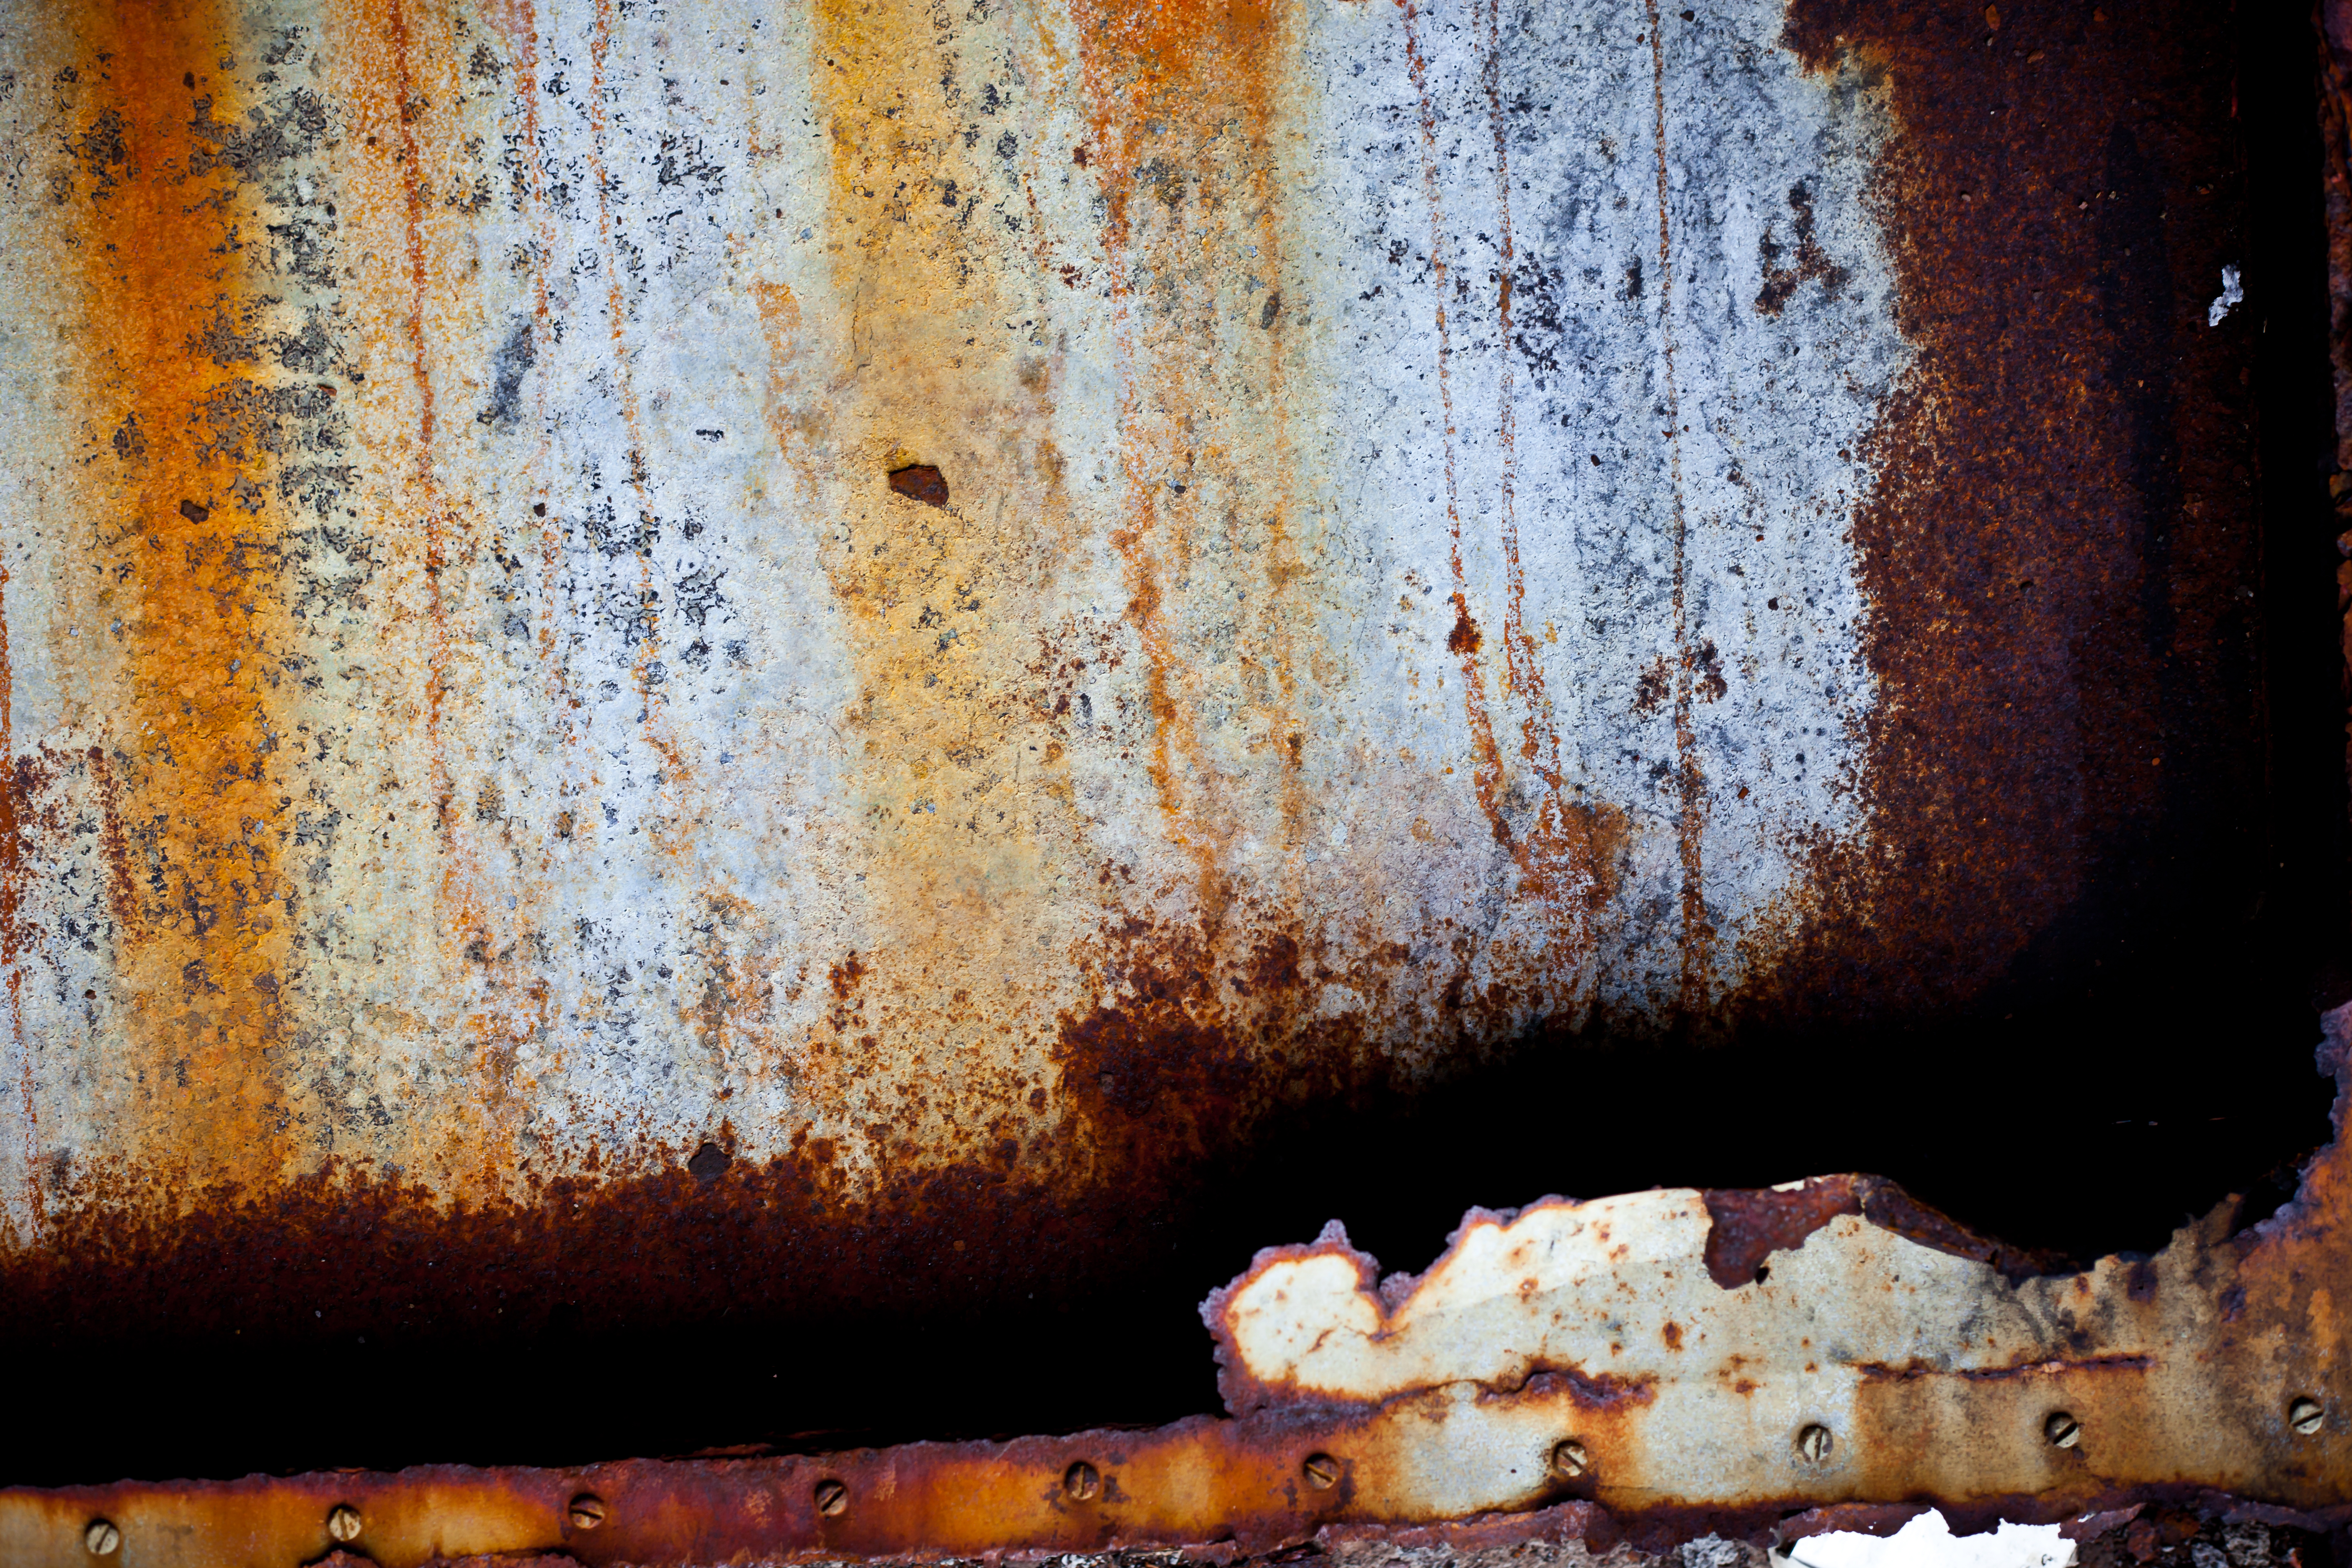 Rusted Metal Texture, Aged, Peeled, Worn, Vintage, HQ Photo